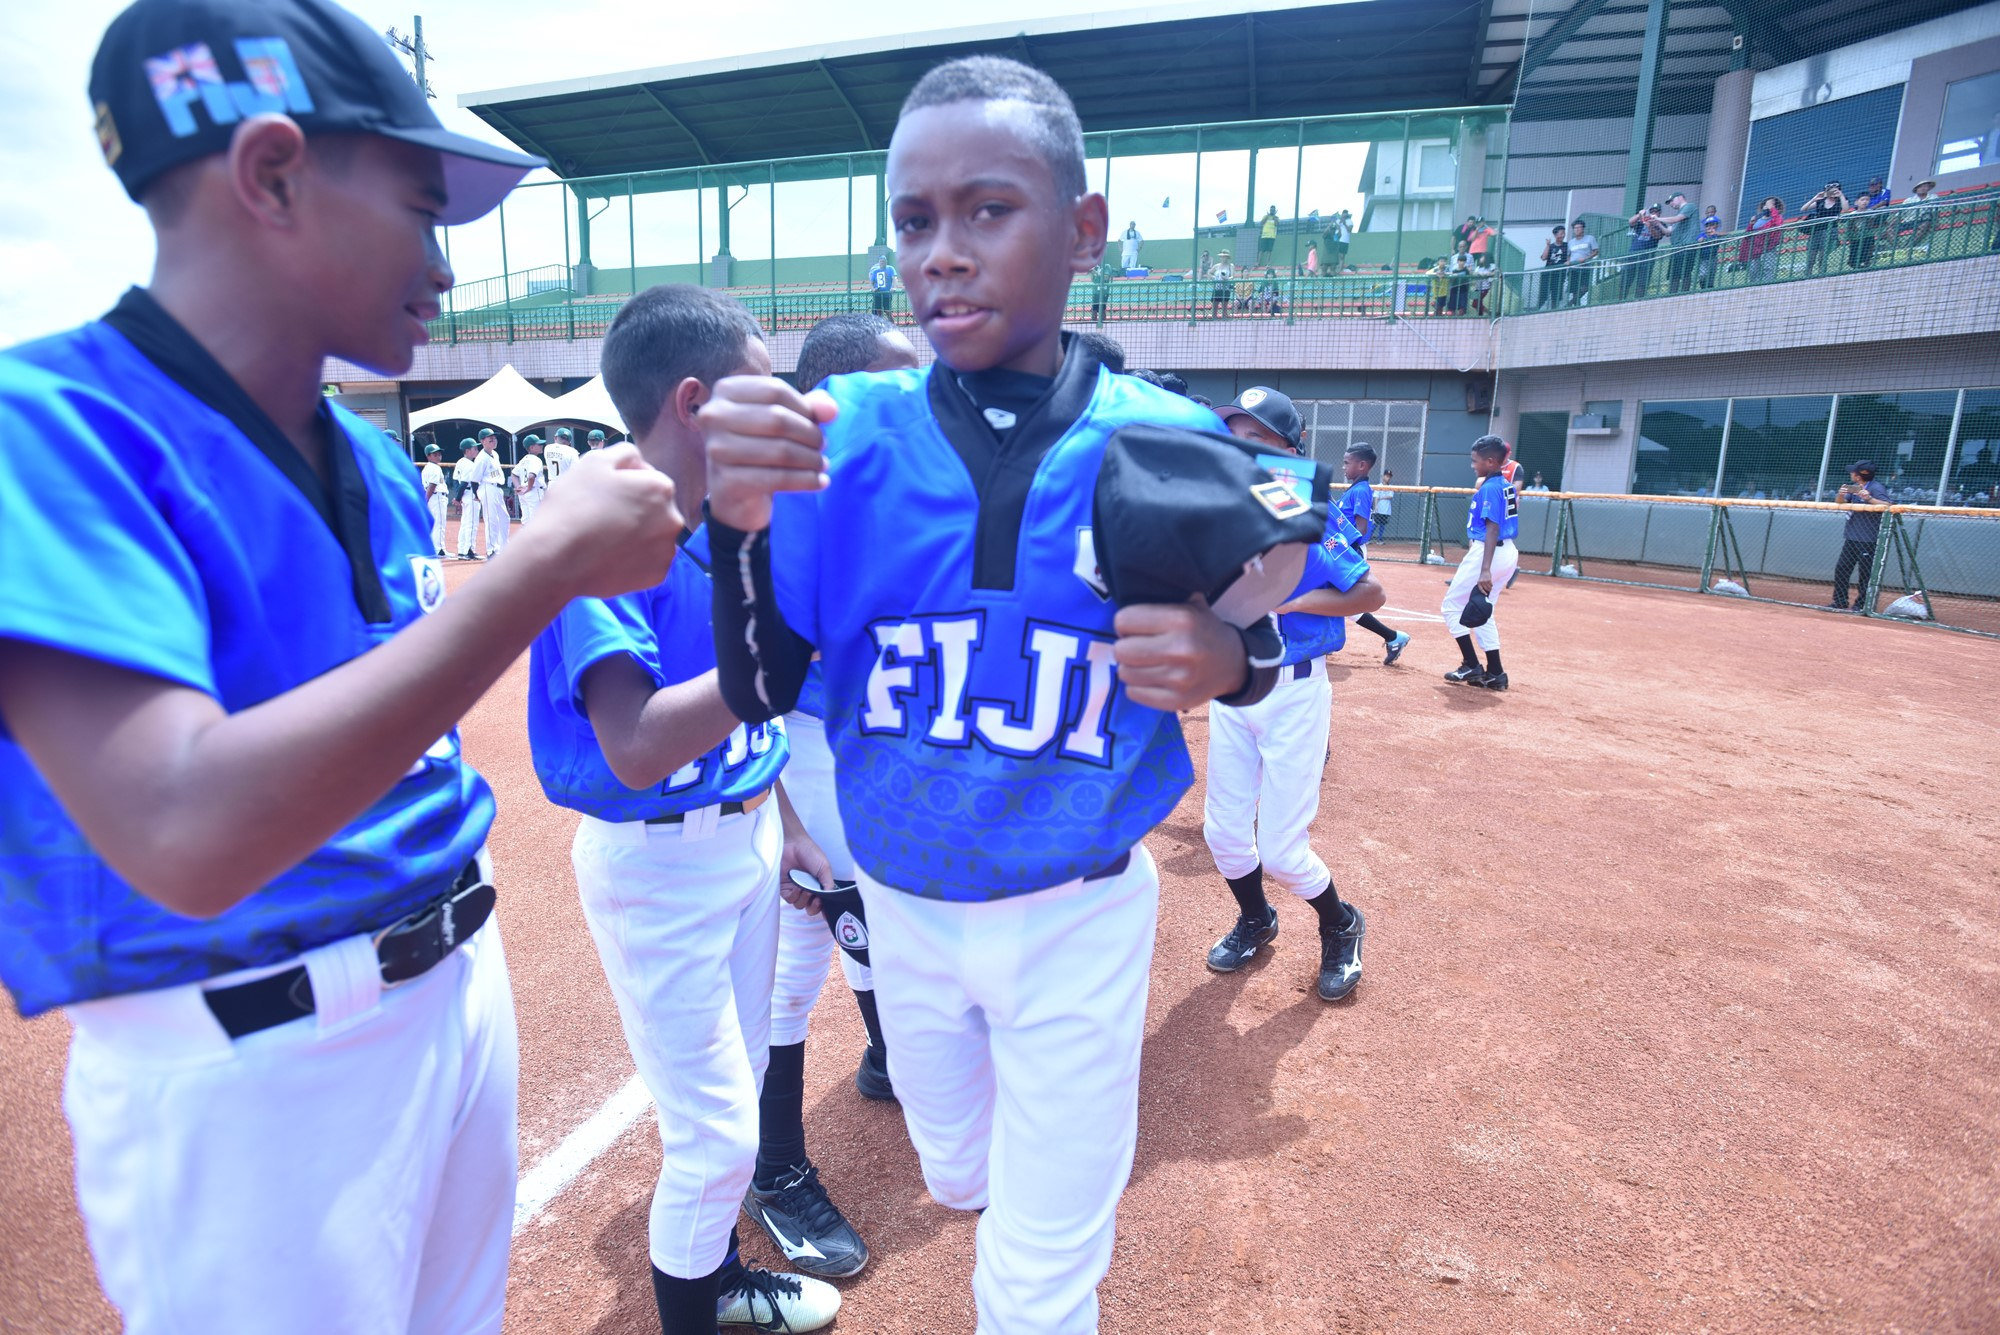 It was the first time in a baseball World Cup for Fiji